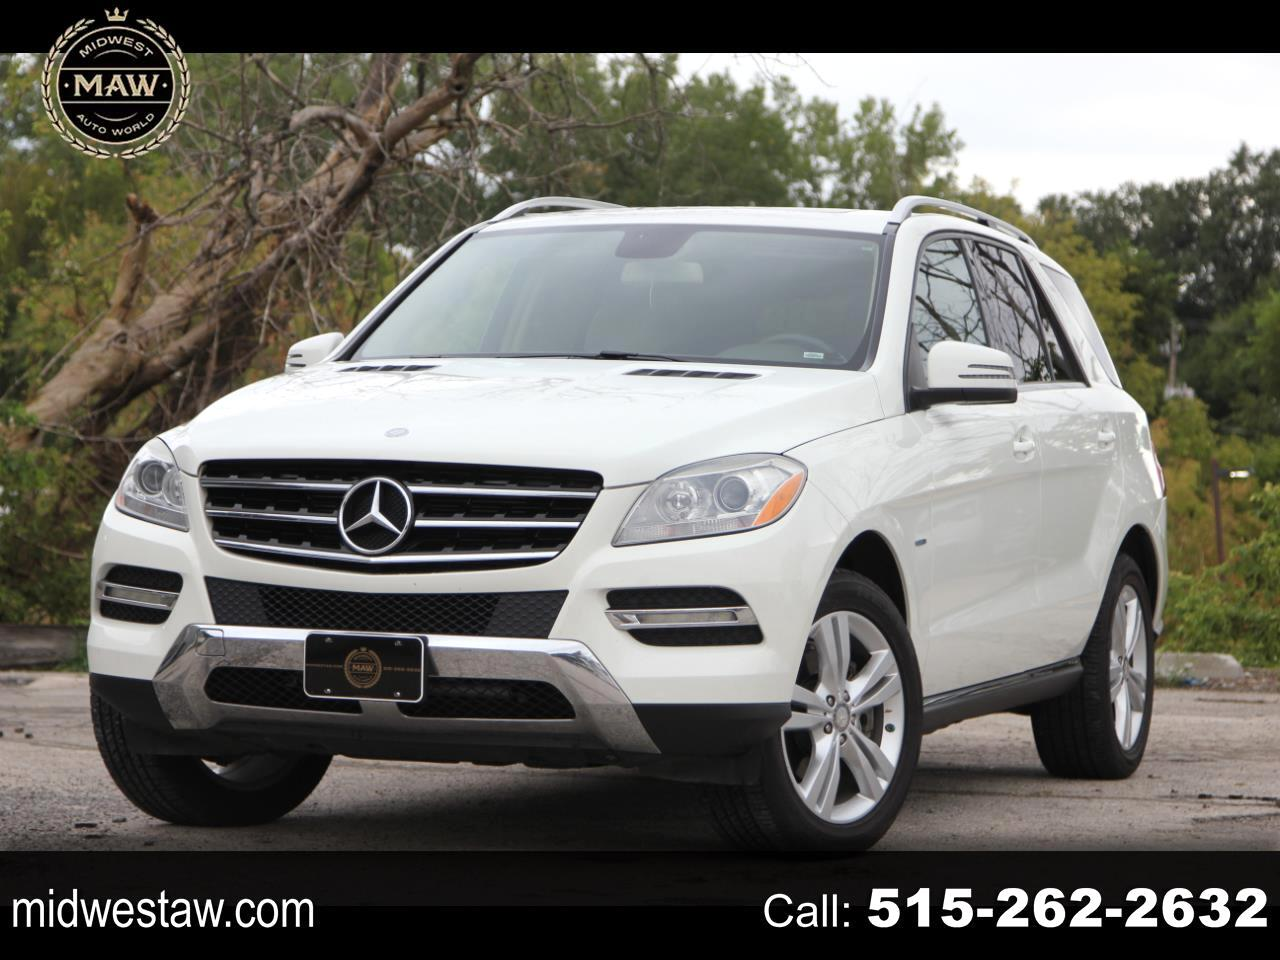 used 2012 mercedes benz m class ml350 4matic for sale in des moines ia 50317 midwest auto world llc des moines ia 50317 midwest auto